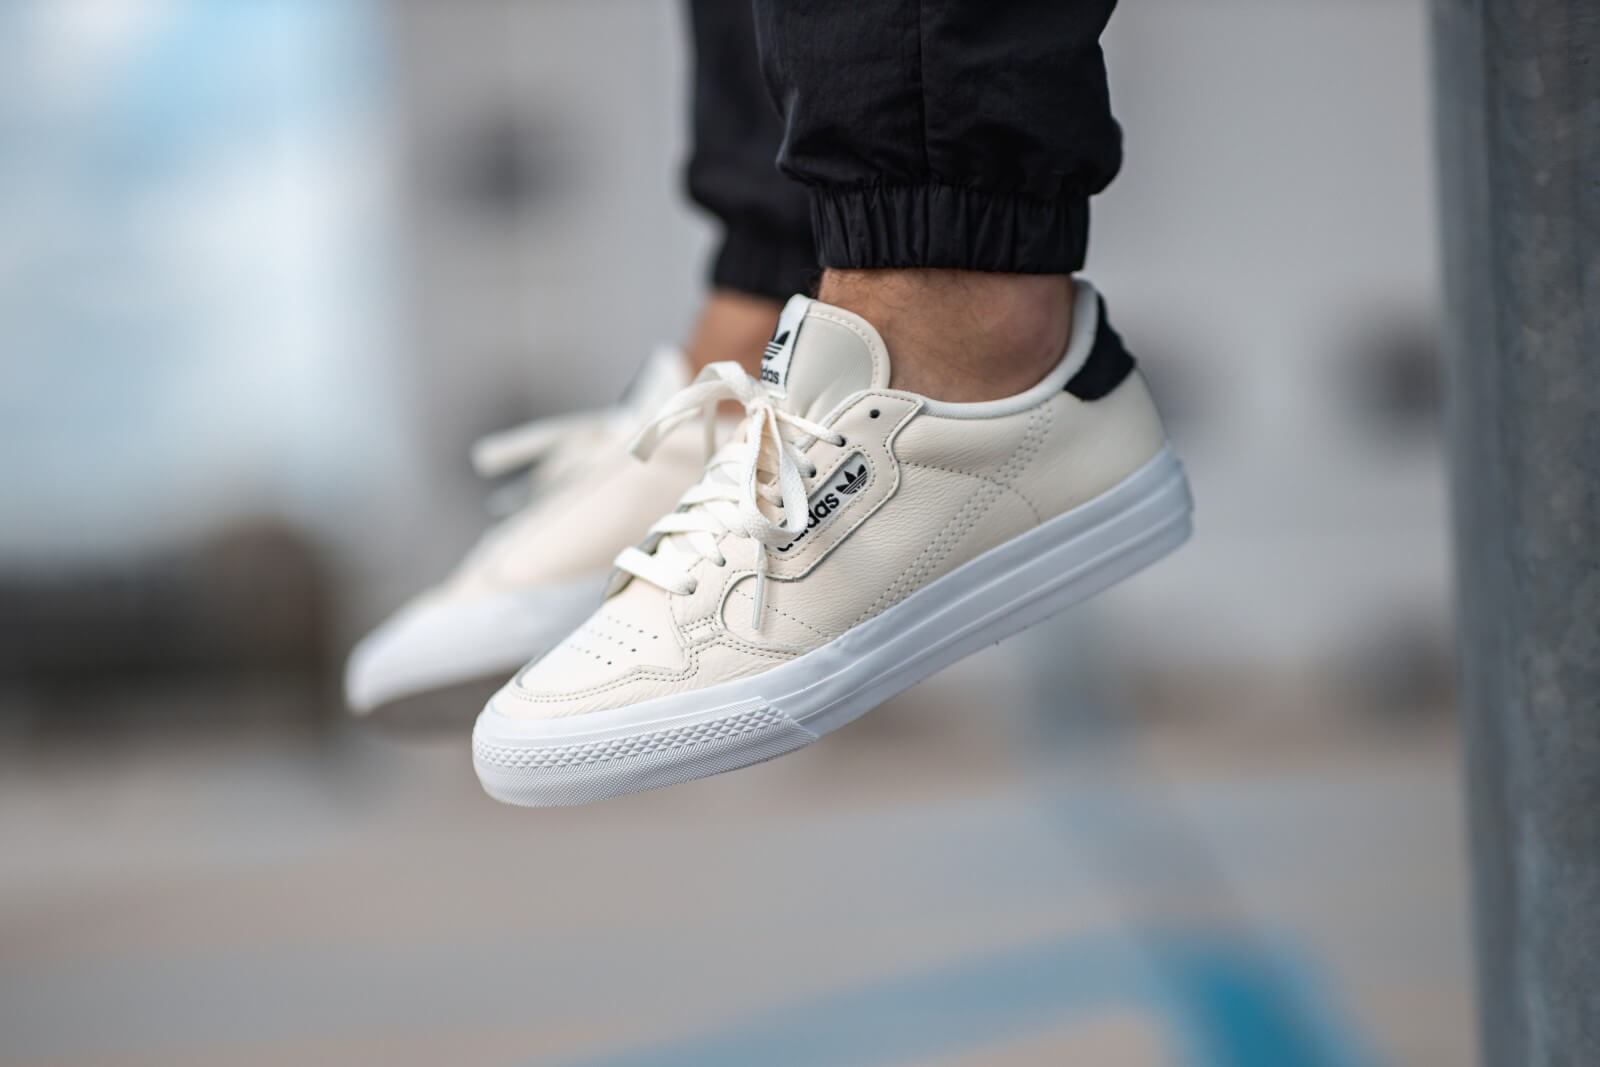 Adidas Continental Vulc Off White/Core Black - EG4589